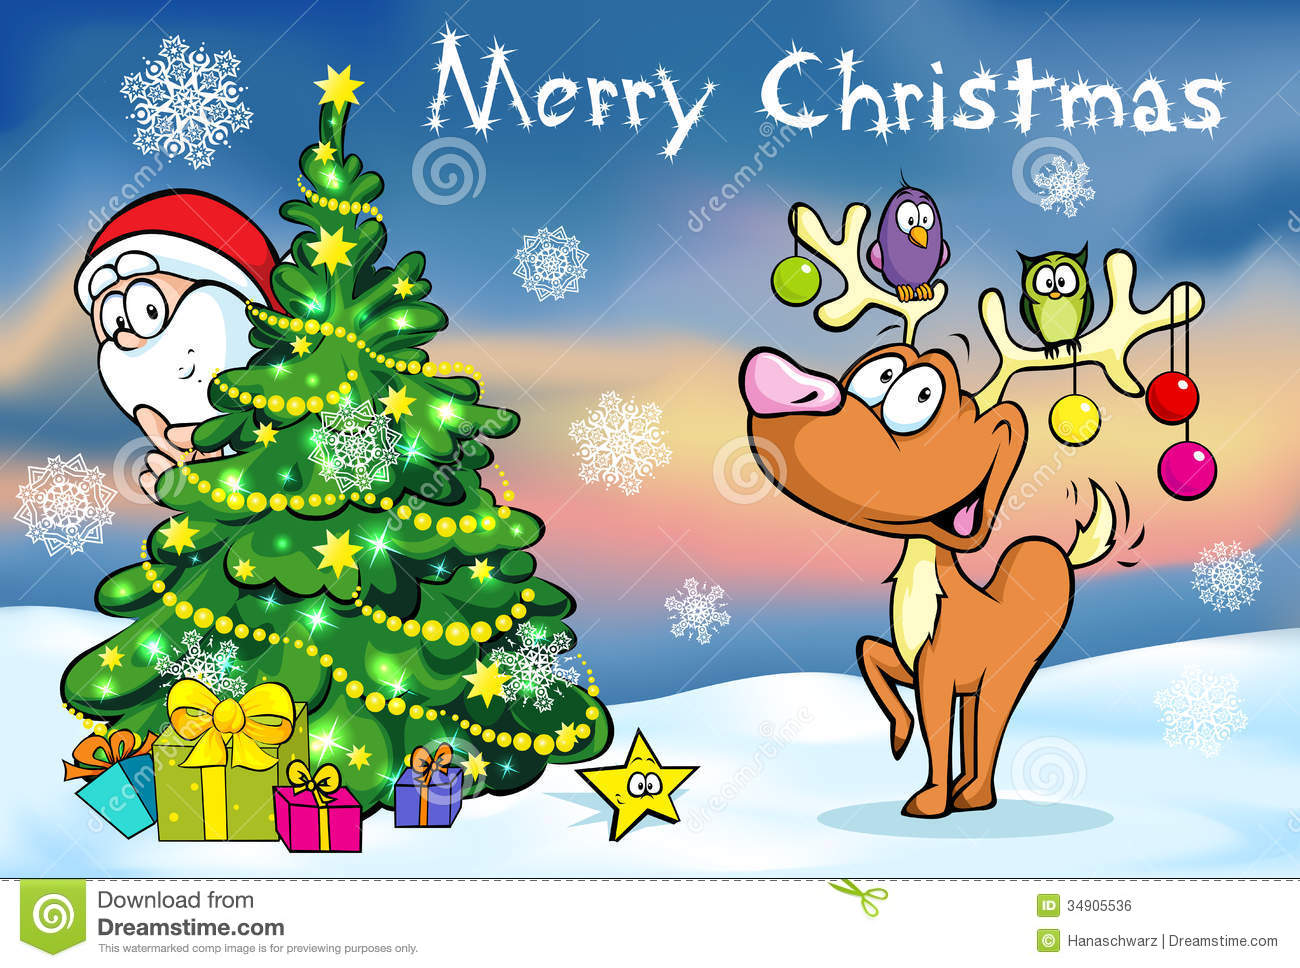 Merry Christmas Greeting Card Stock Vector Illustration Of Card